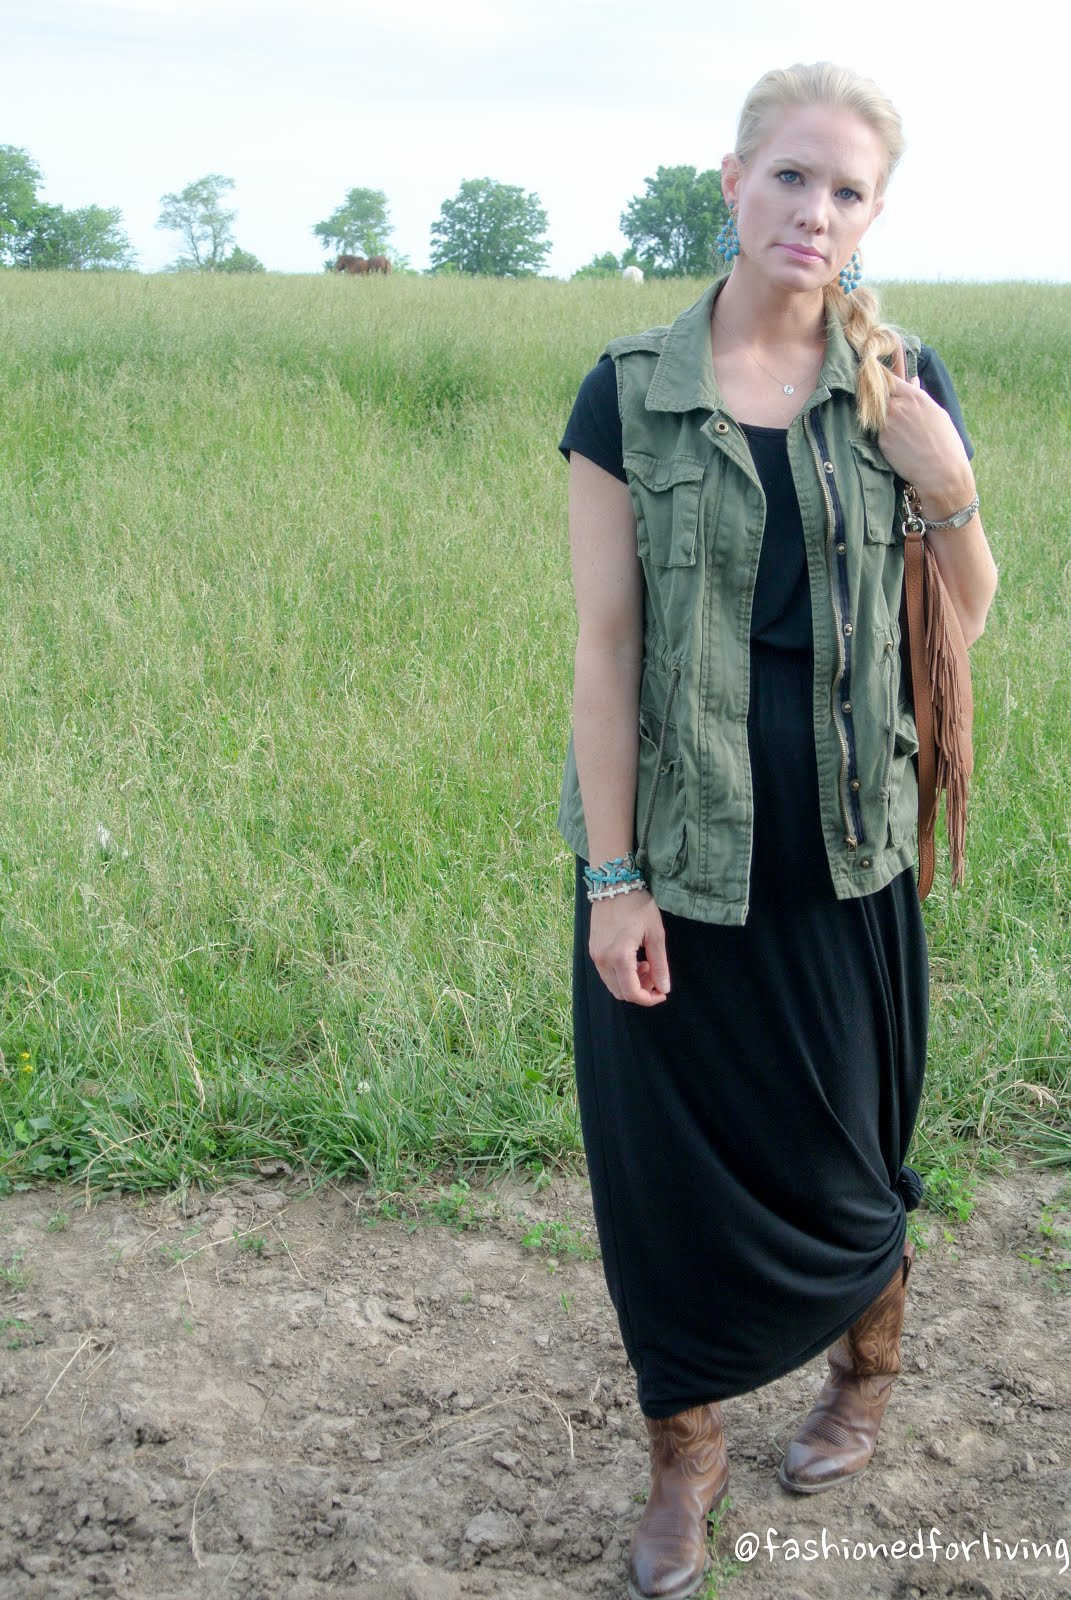 Fashioned For Living: maxi dress and cowboy boots outfit with military ...